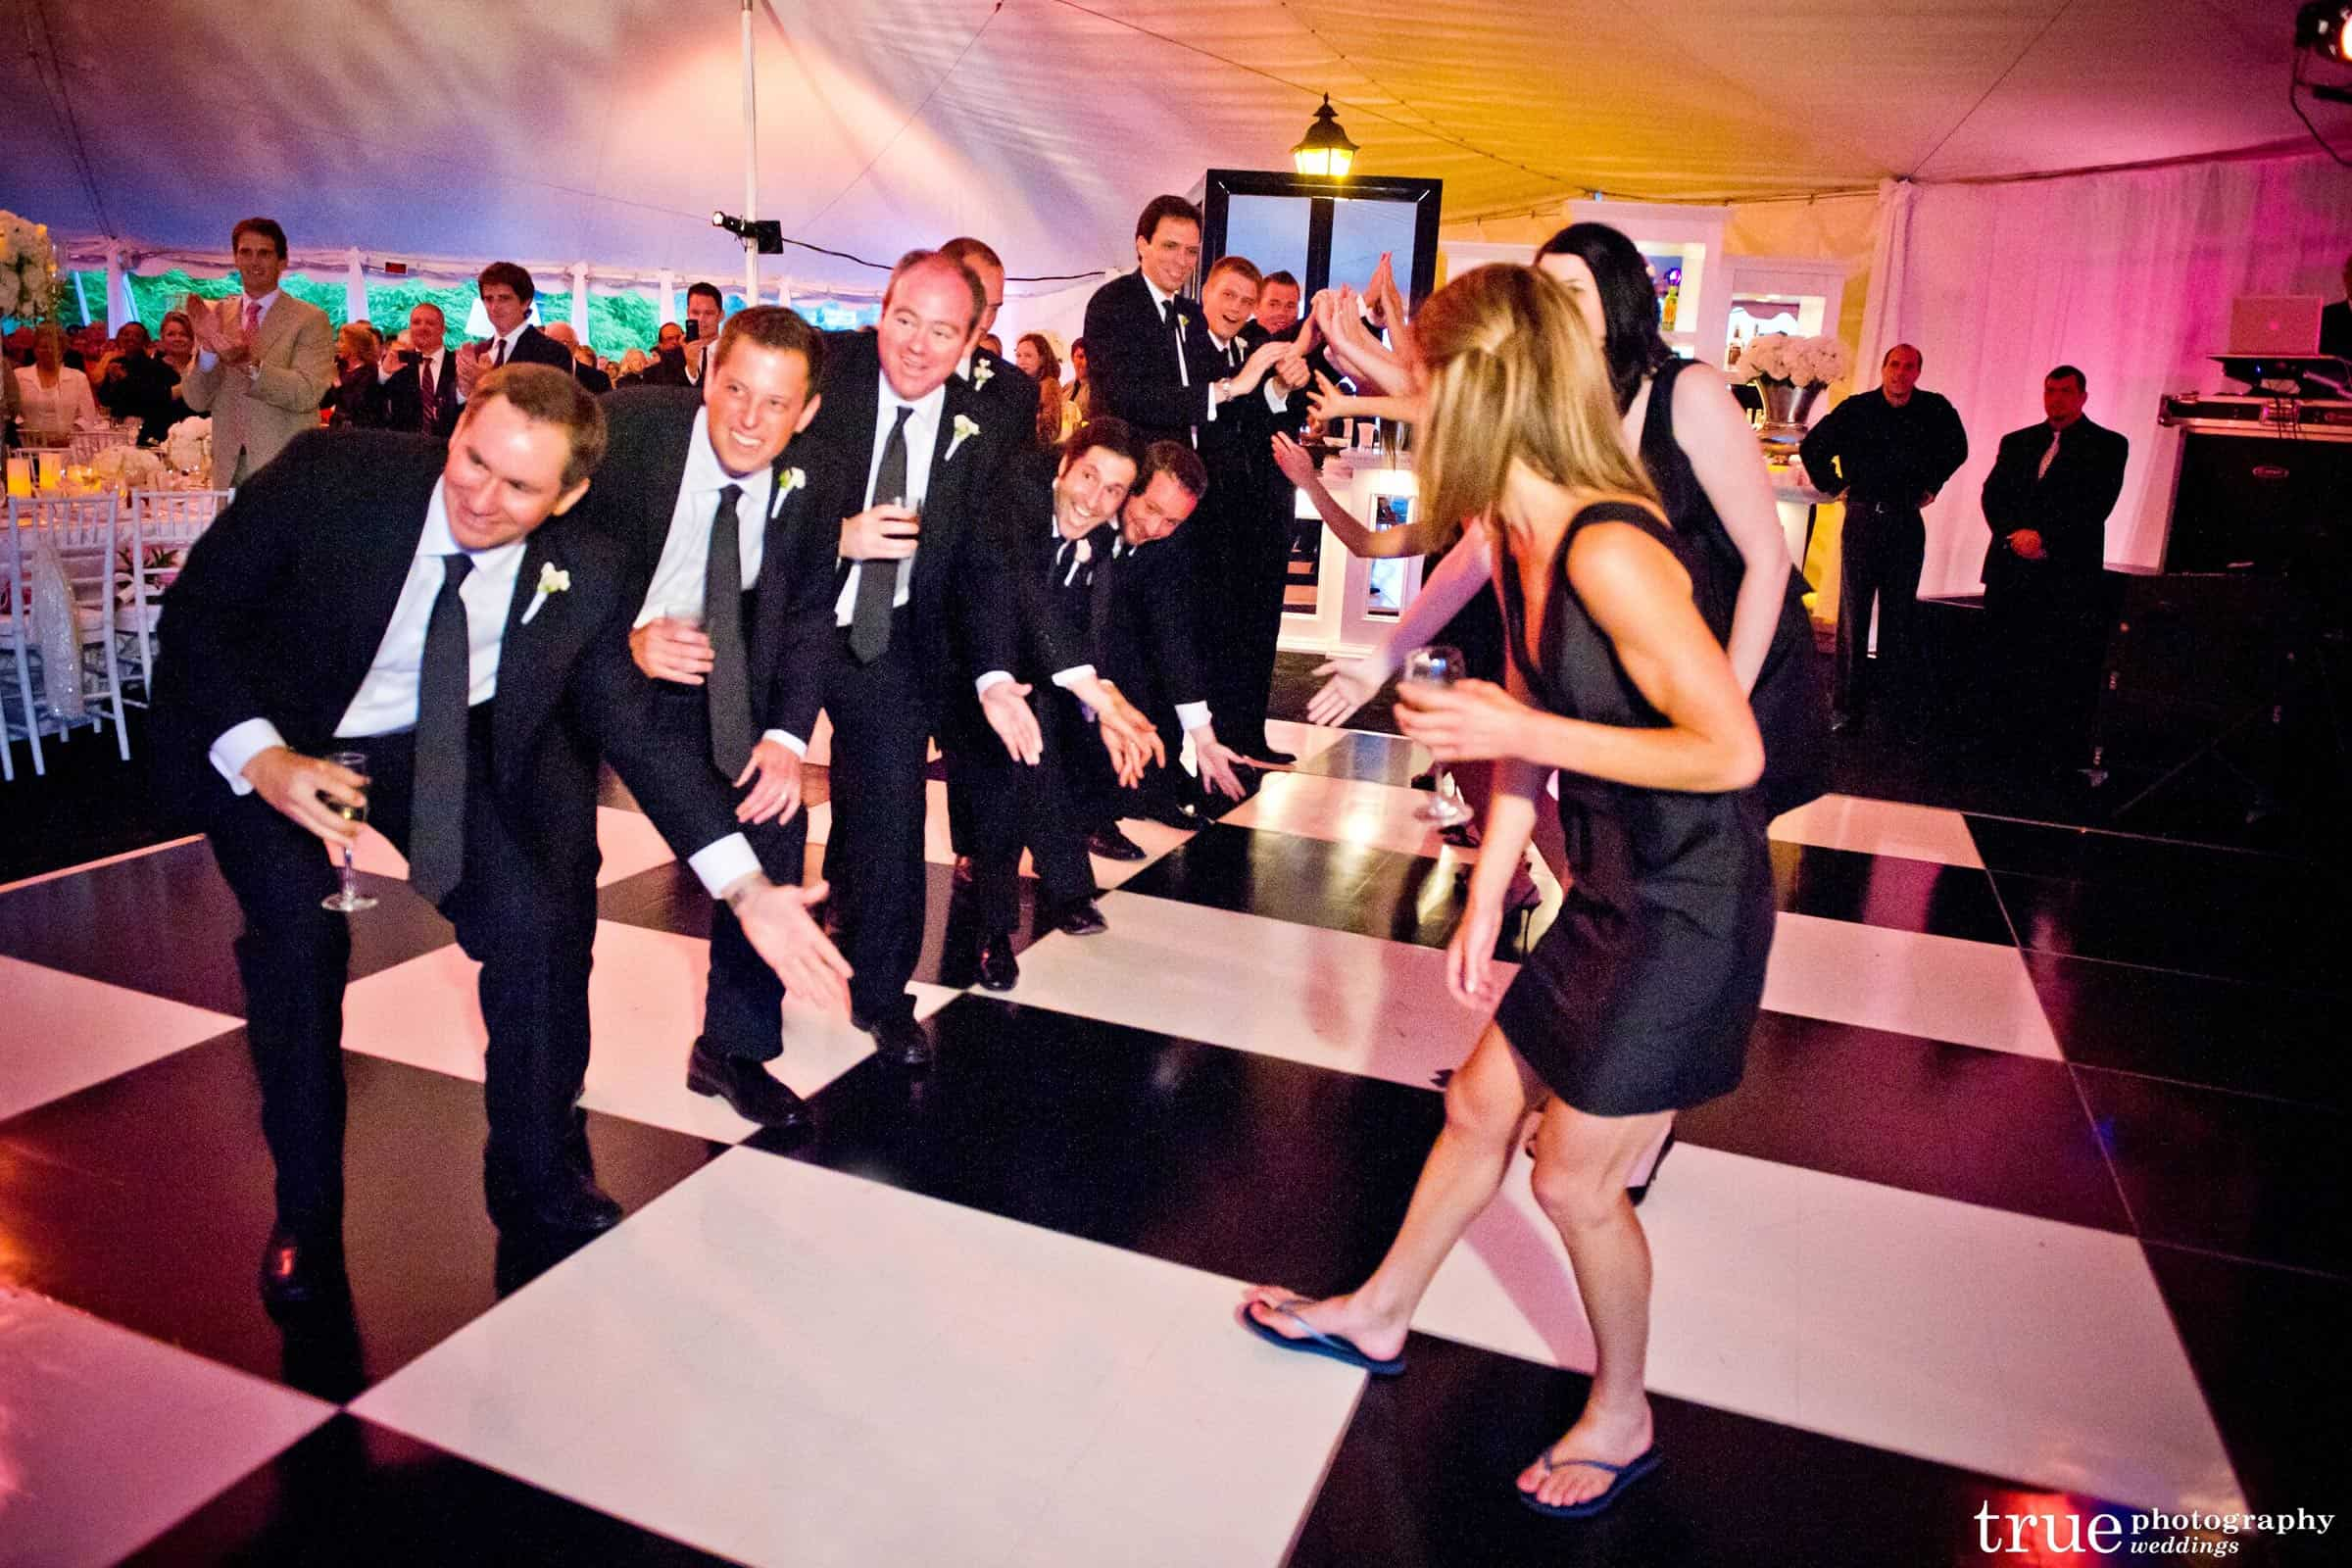 The Best Songs For The Grand Entrance Of The Wedding Party: Reception Grand Entrance Rules